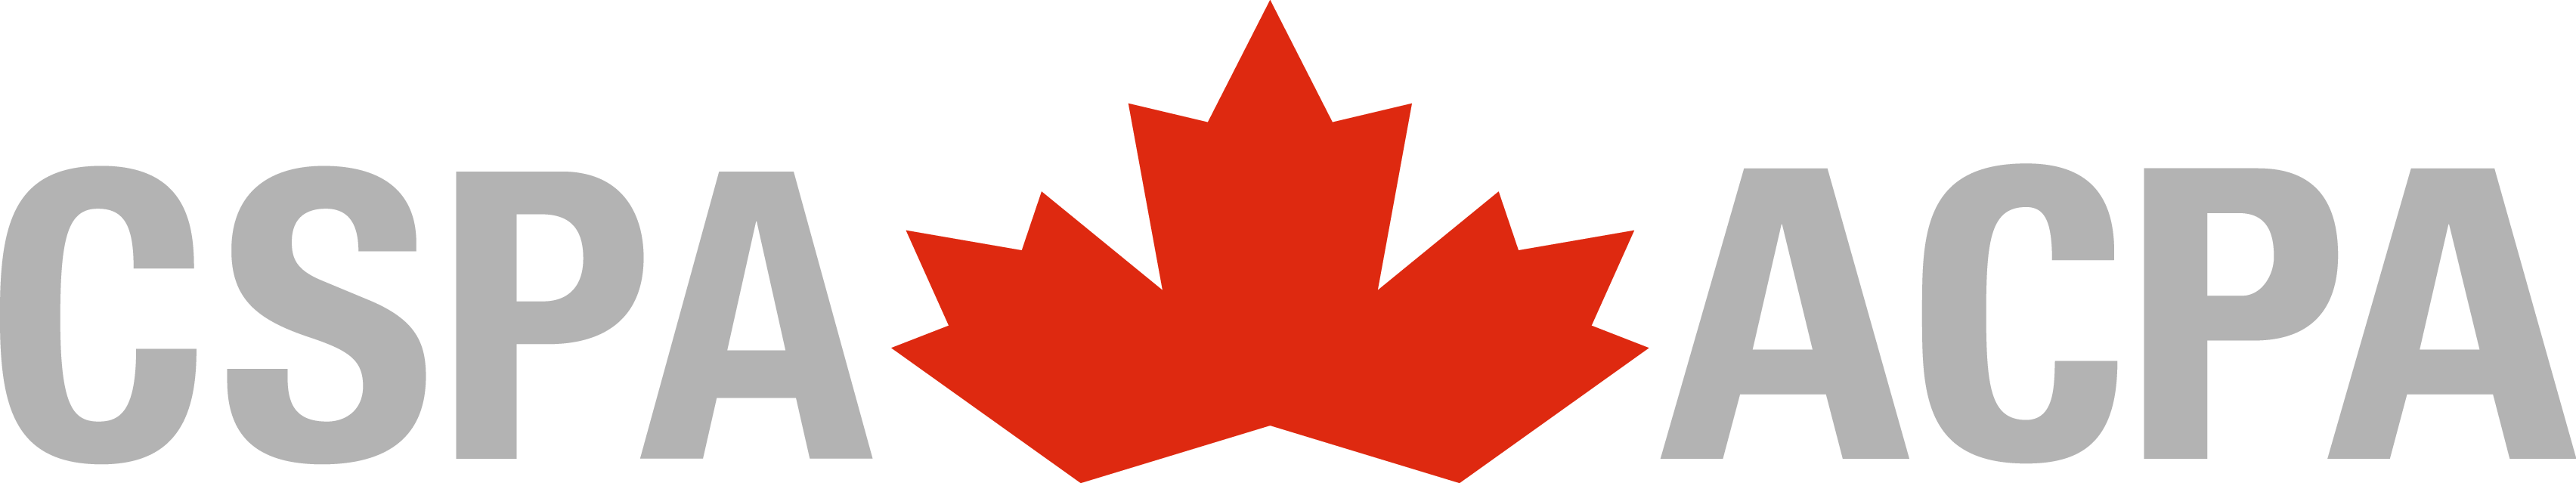 North American Steel Industry Calls for Urgent Action to Approve and Implement the USMCA